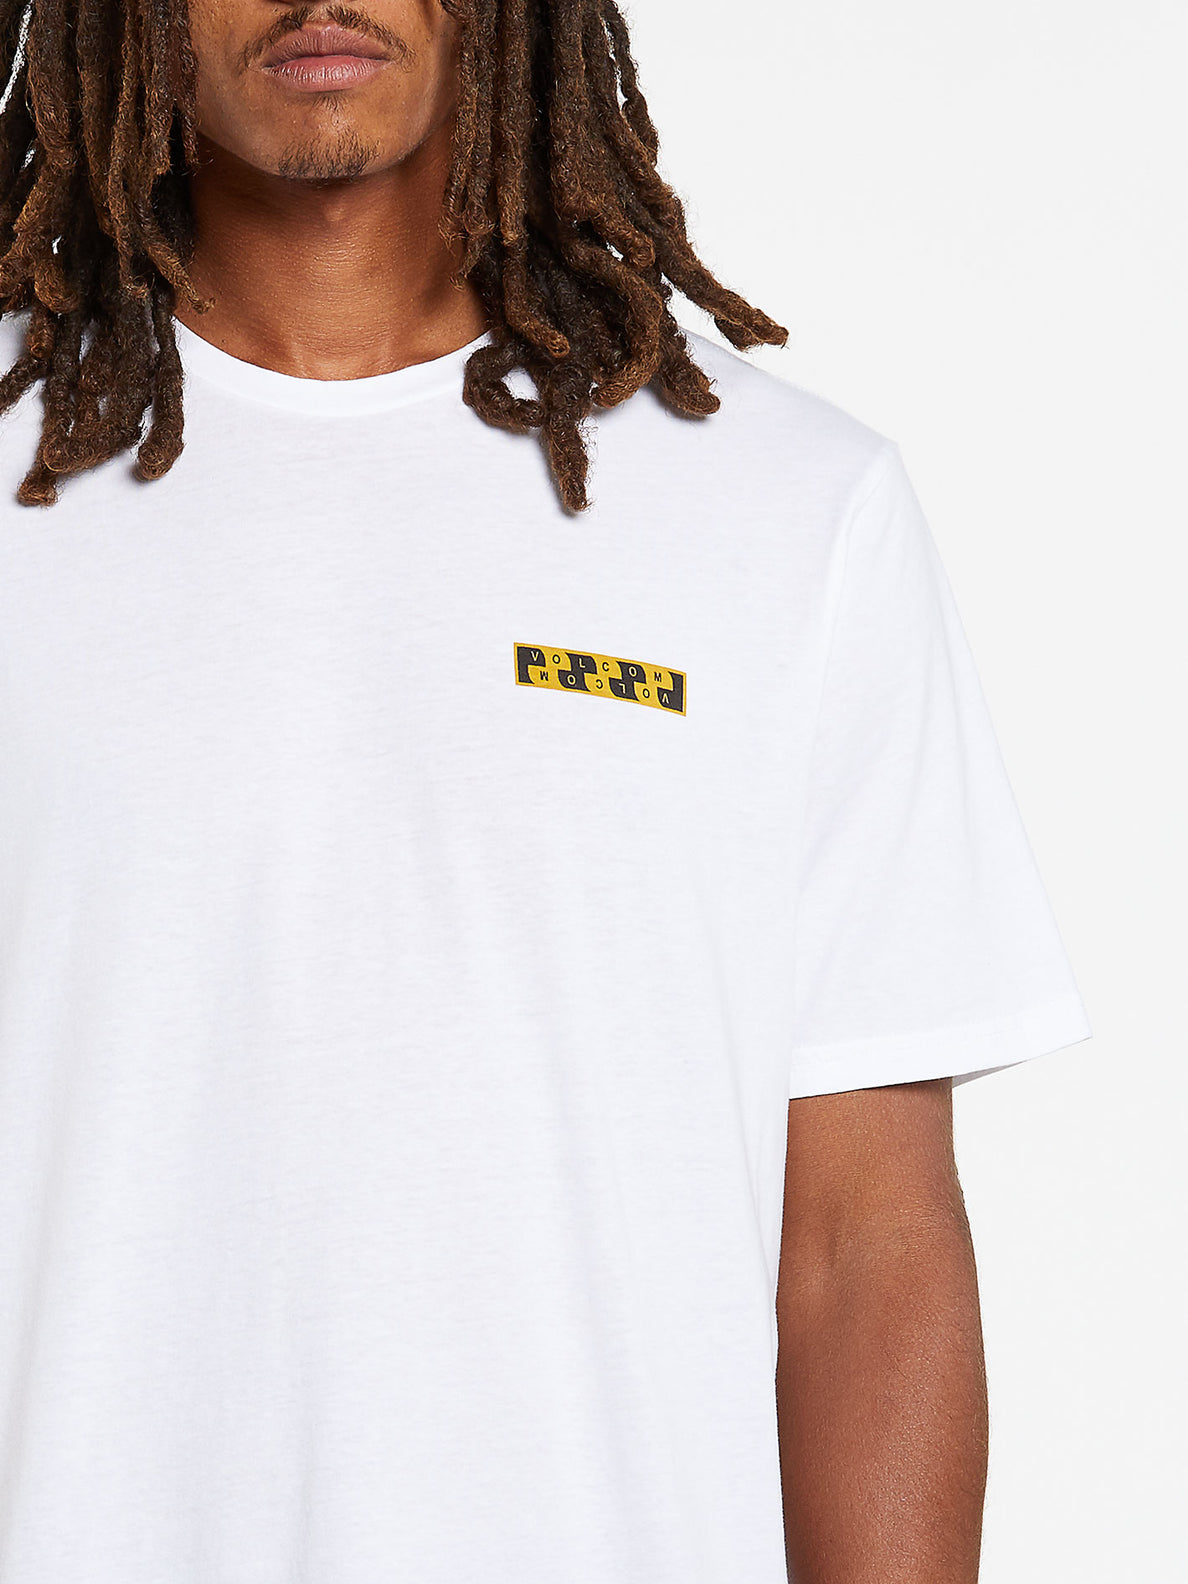 More Of Us Short Sleeve Tee - White (A5032002_WHT) [1]